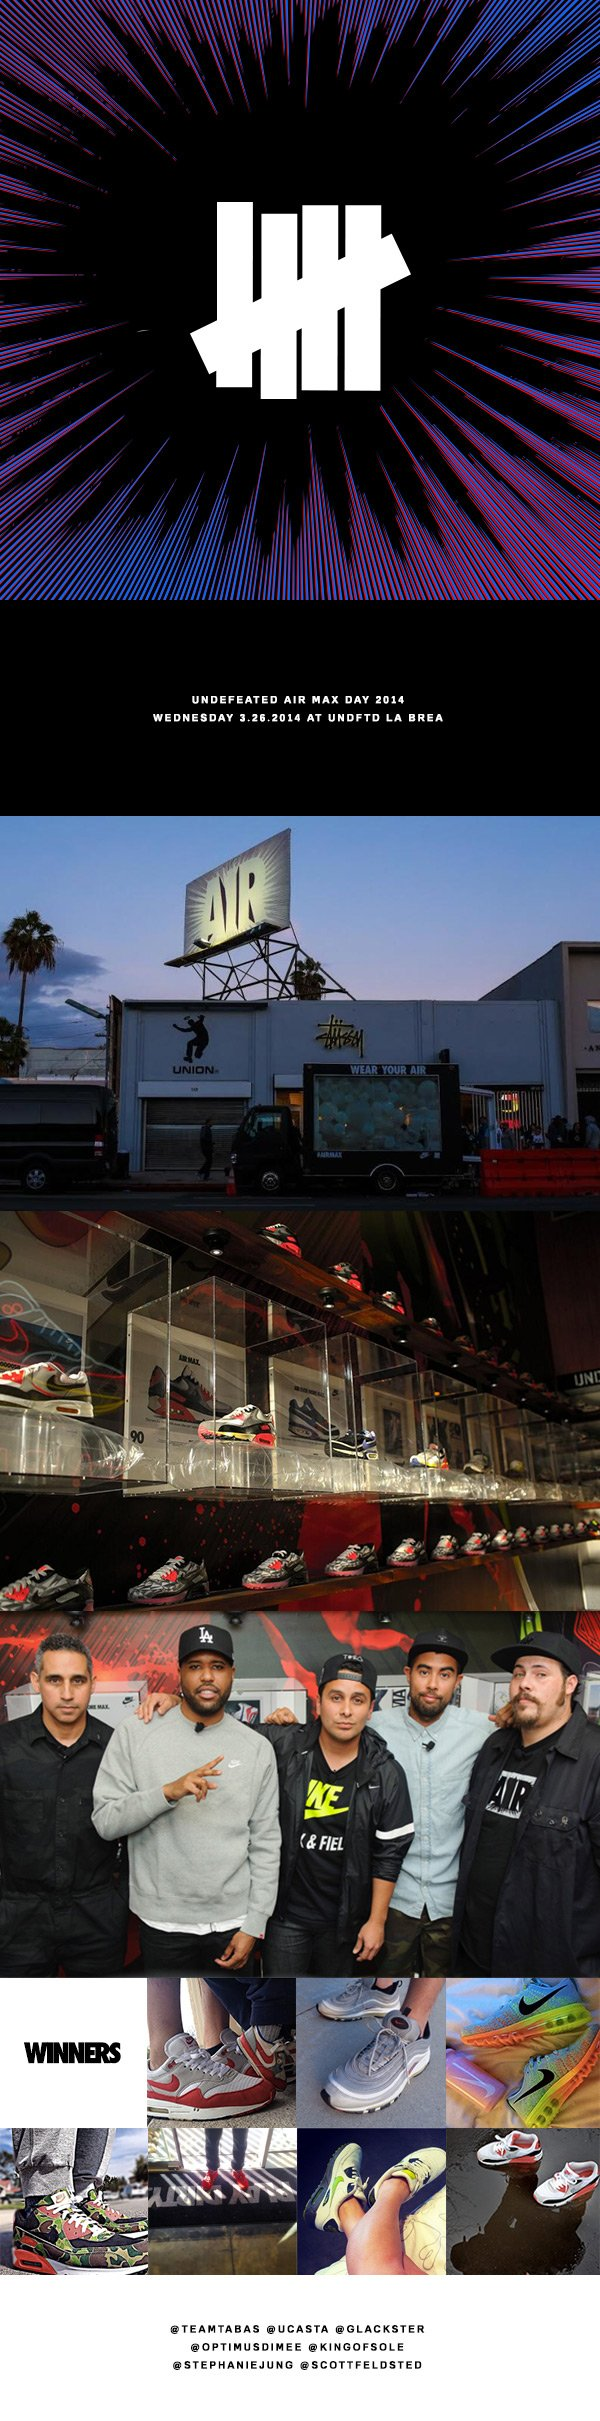 Undefeated Air Max Day 2014 / Wednesday 3.26.2014 at UNDFTD La Brea